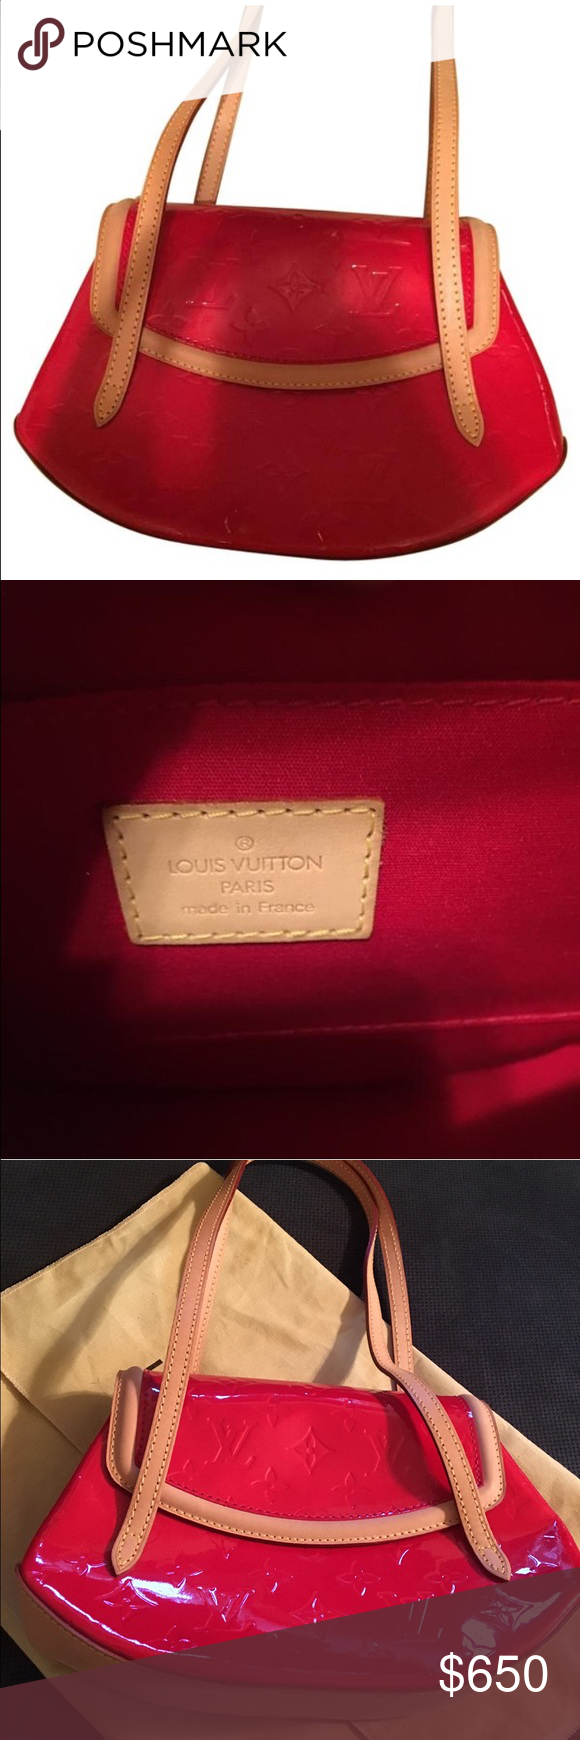 Authentic Louis Vuitton Biscayne bay PM handbag Gorgeous red authentic Louis Vuitton shoulder bag comes with dust bag excellent condition ❤️ Louis Vuitton Bags Shoulder Bags